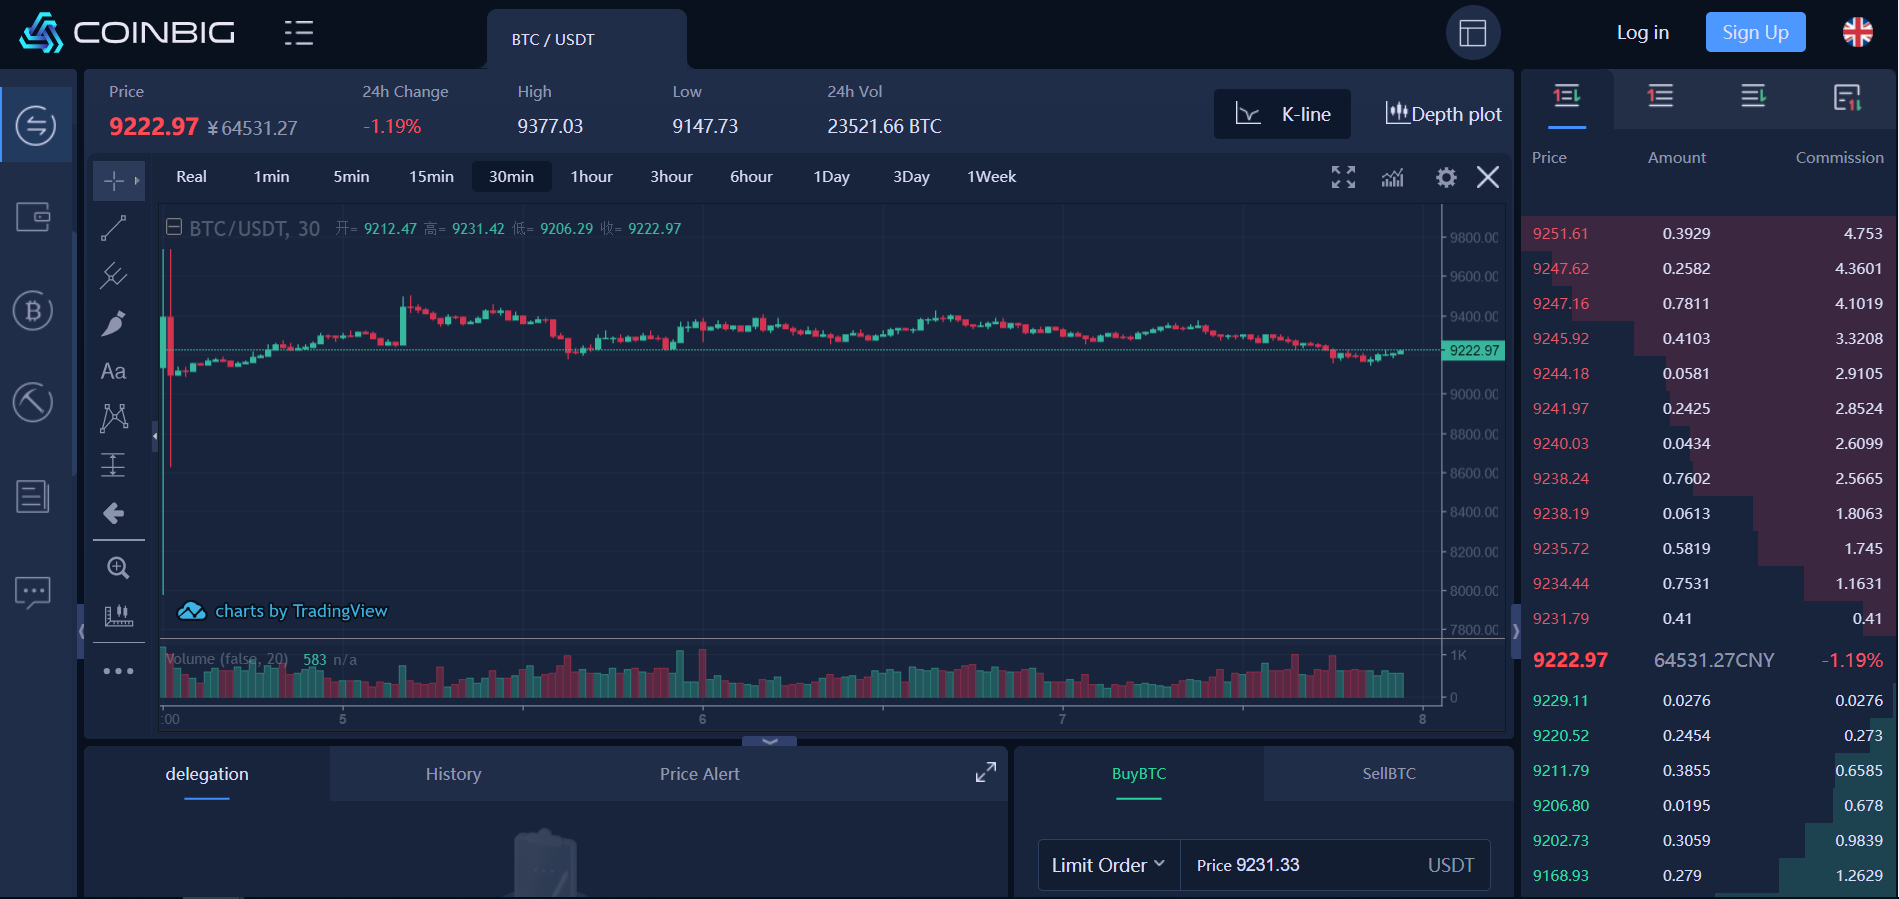 COINBIG Trading View